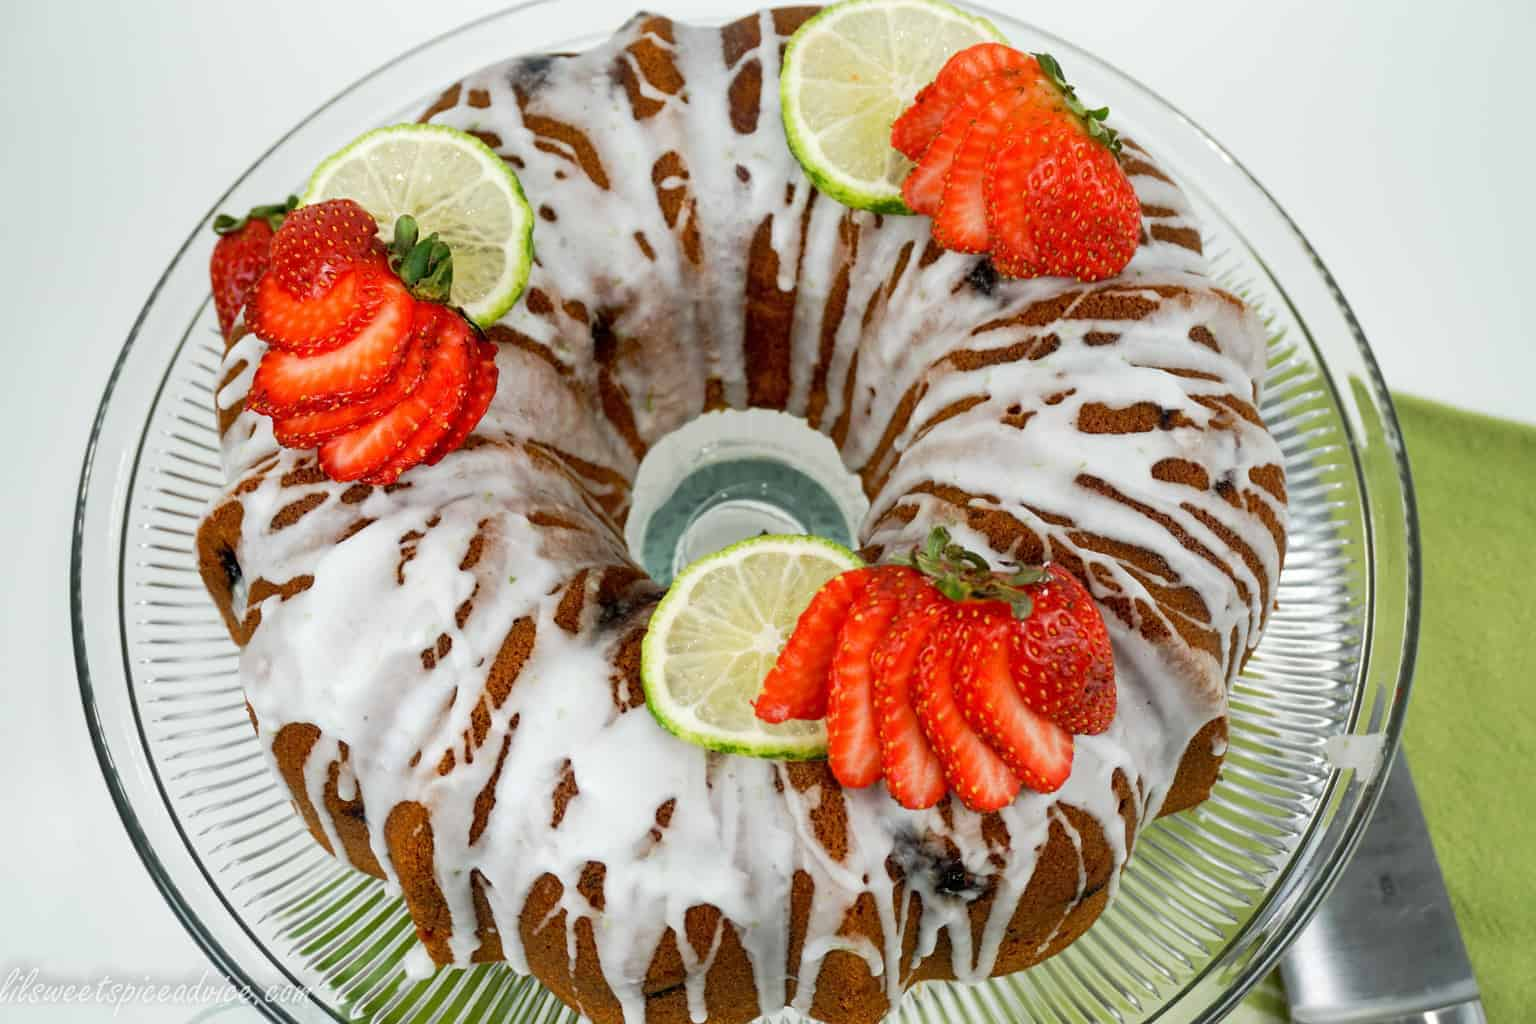 Margarita pound cake recipe